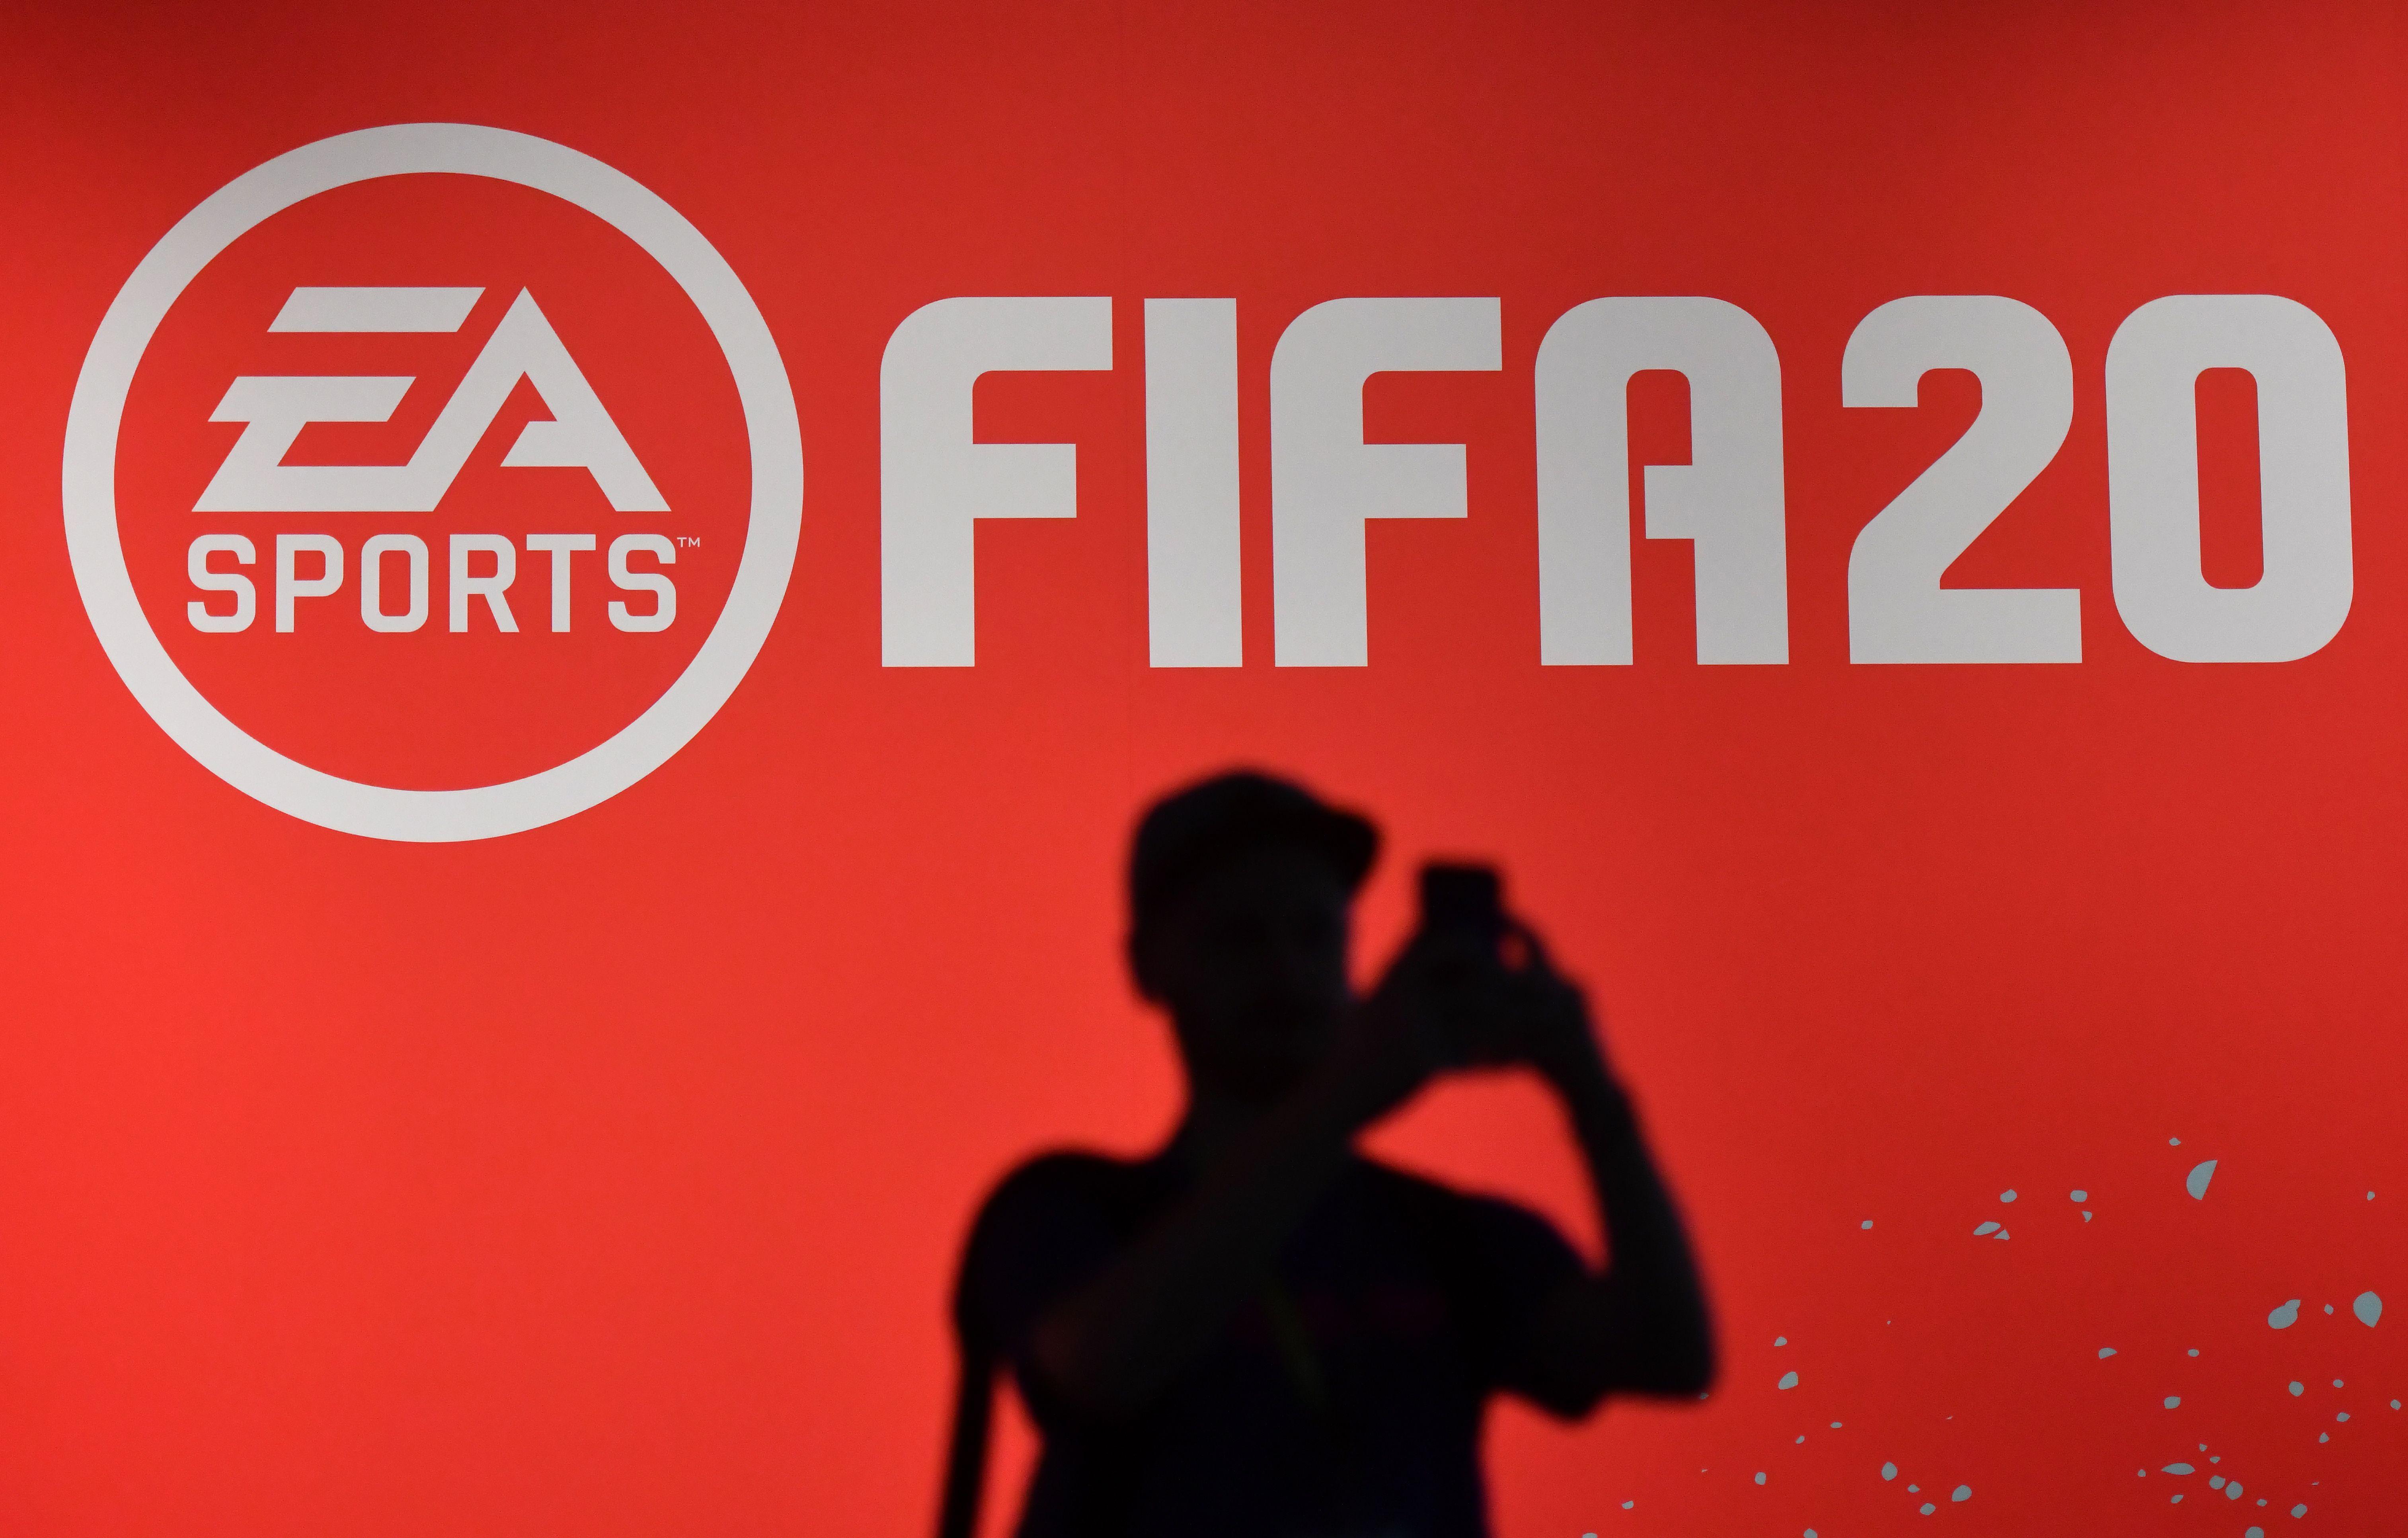 'FIFA 20' video game glitch exposes players' personal details